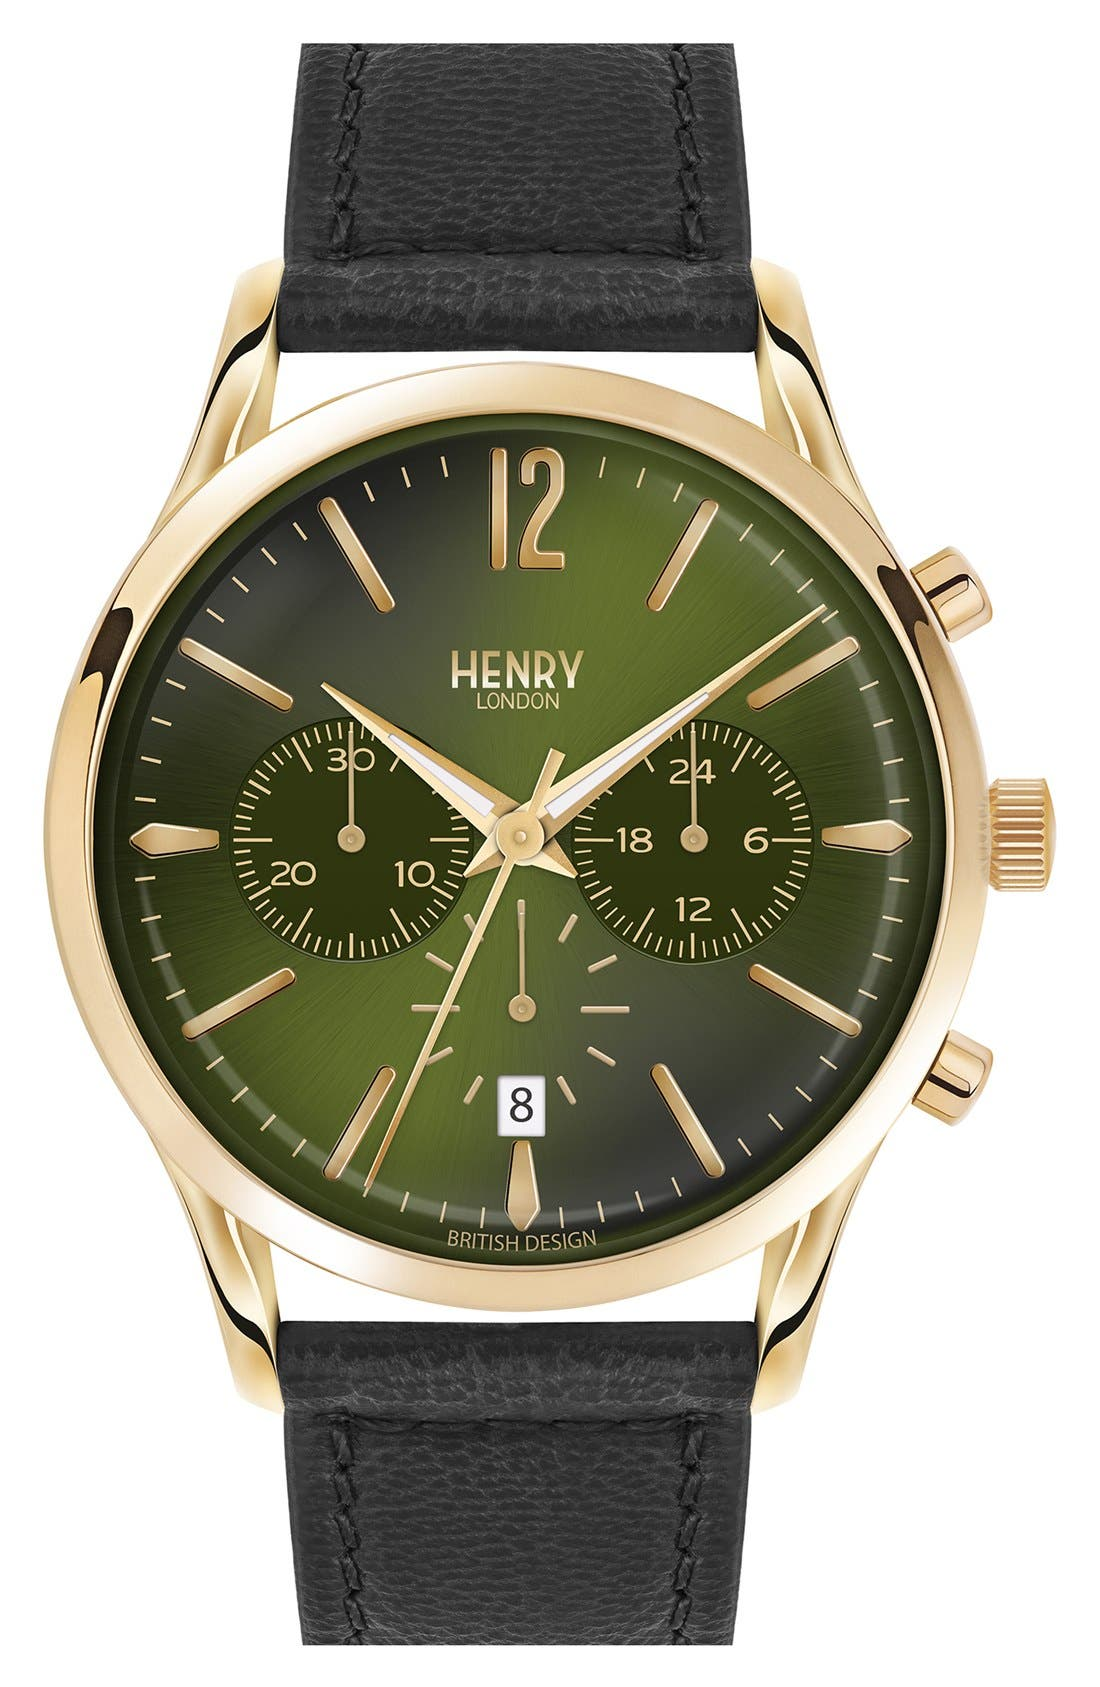 HENRY LONDON 'Chiswick' Chronograph Leather Strap Watch, 41Mm in Black/ Rich Green